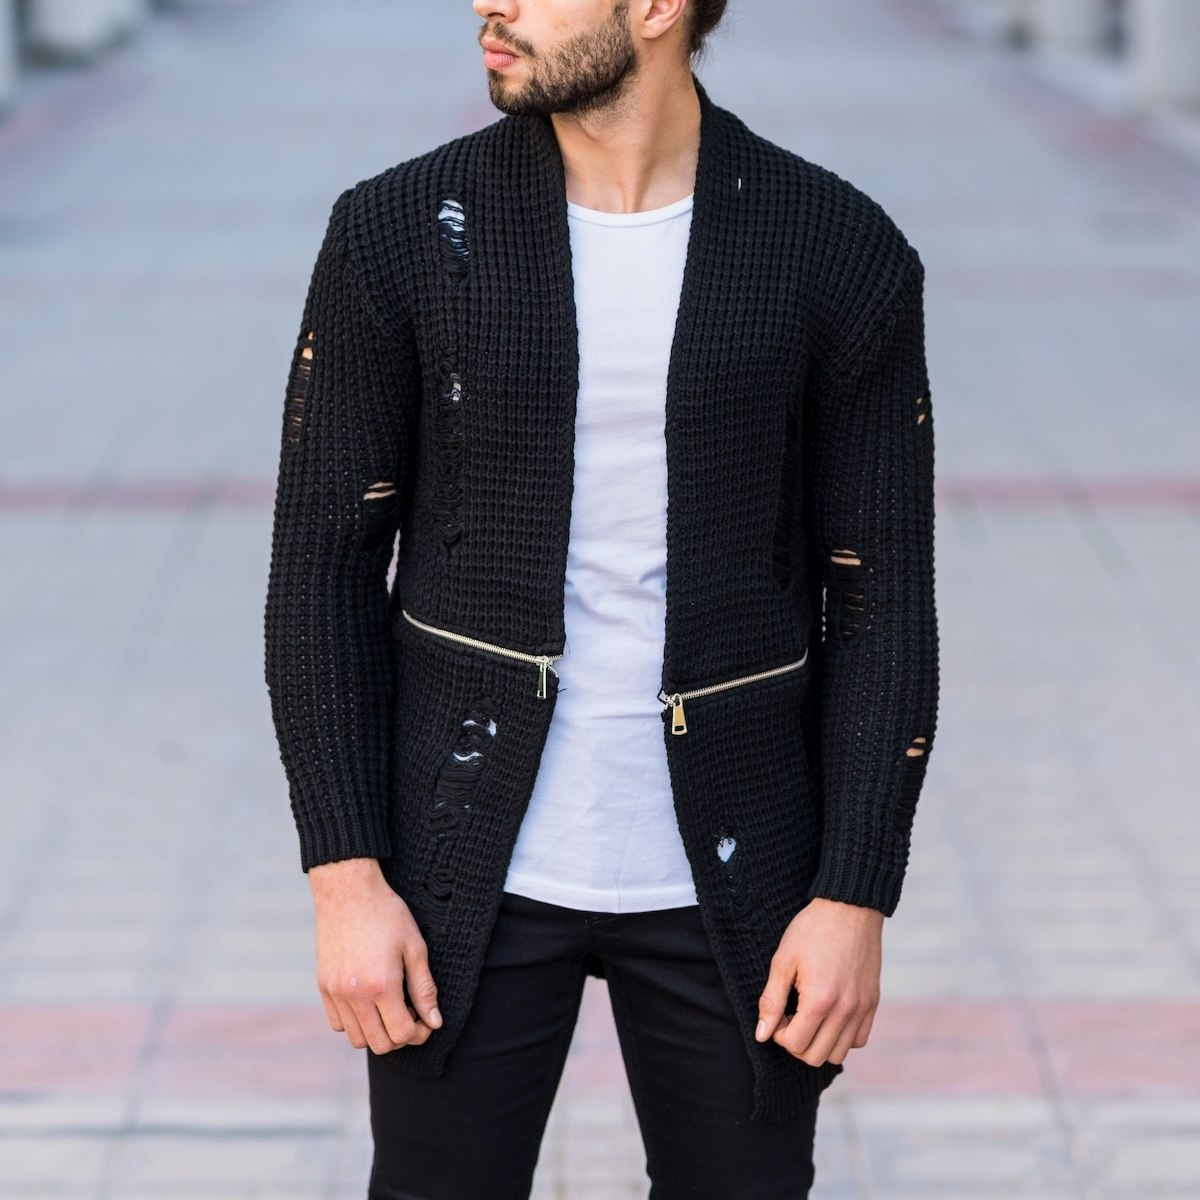 Men's Half Zipped Ragged Cardigan In Black